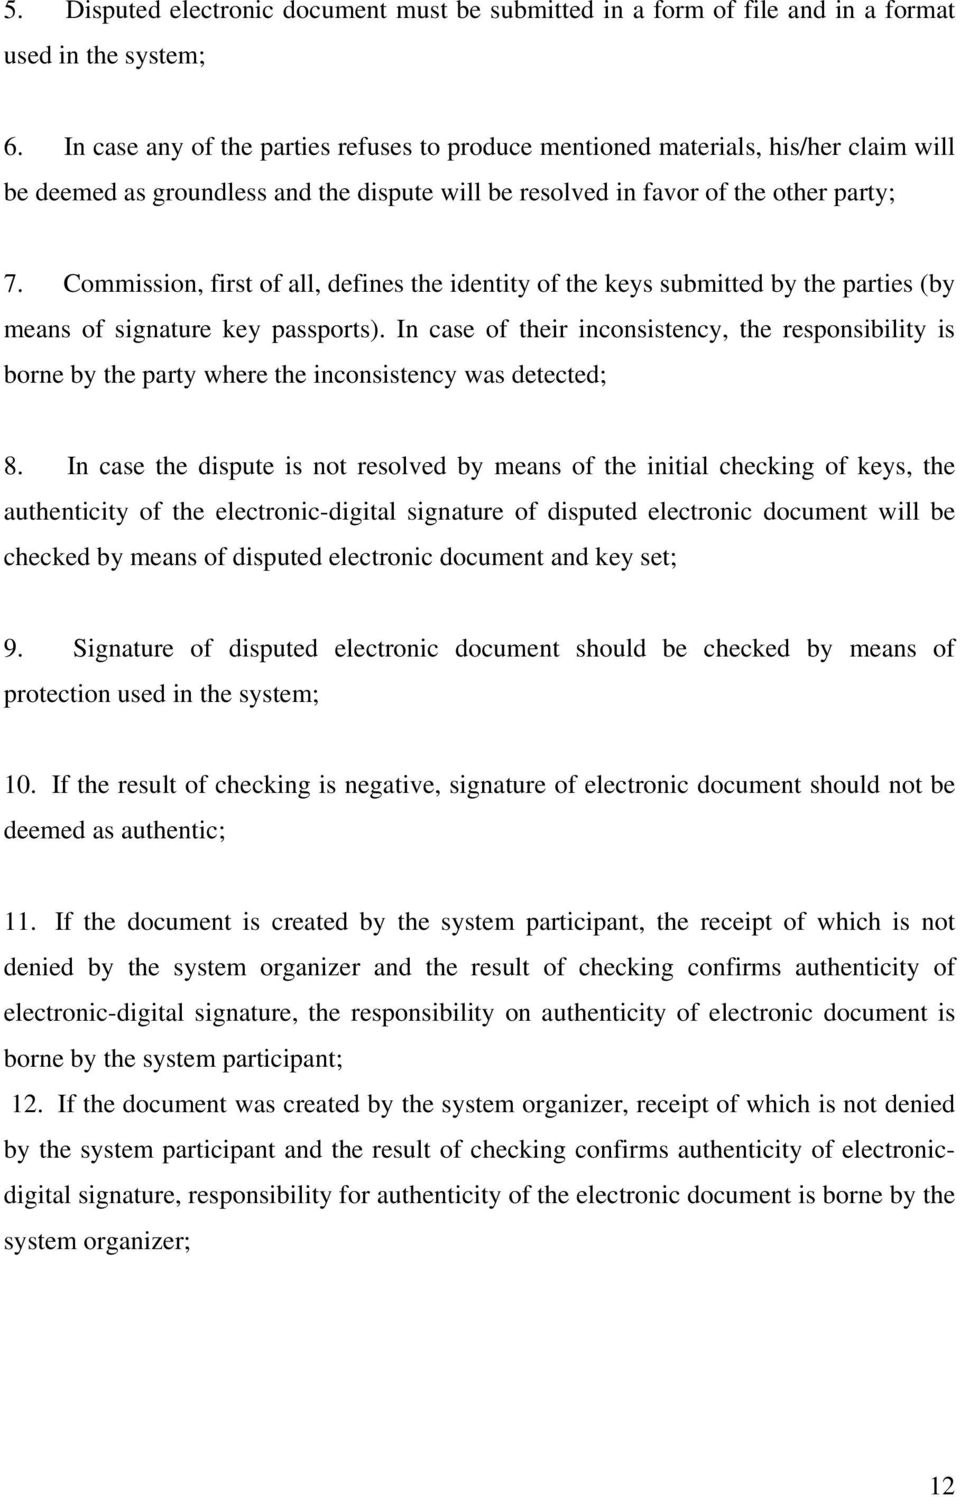 Commission, first of all, defines the identity of the keys submitted by the parties (by means of signature key passports).